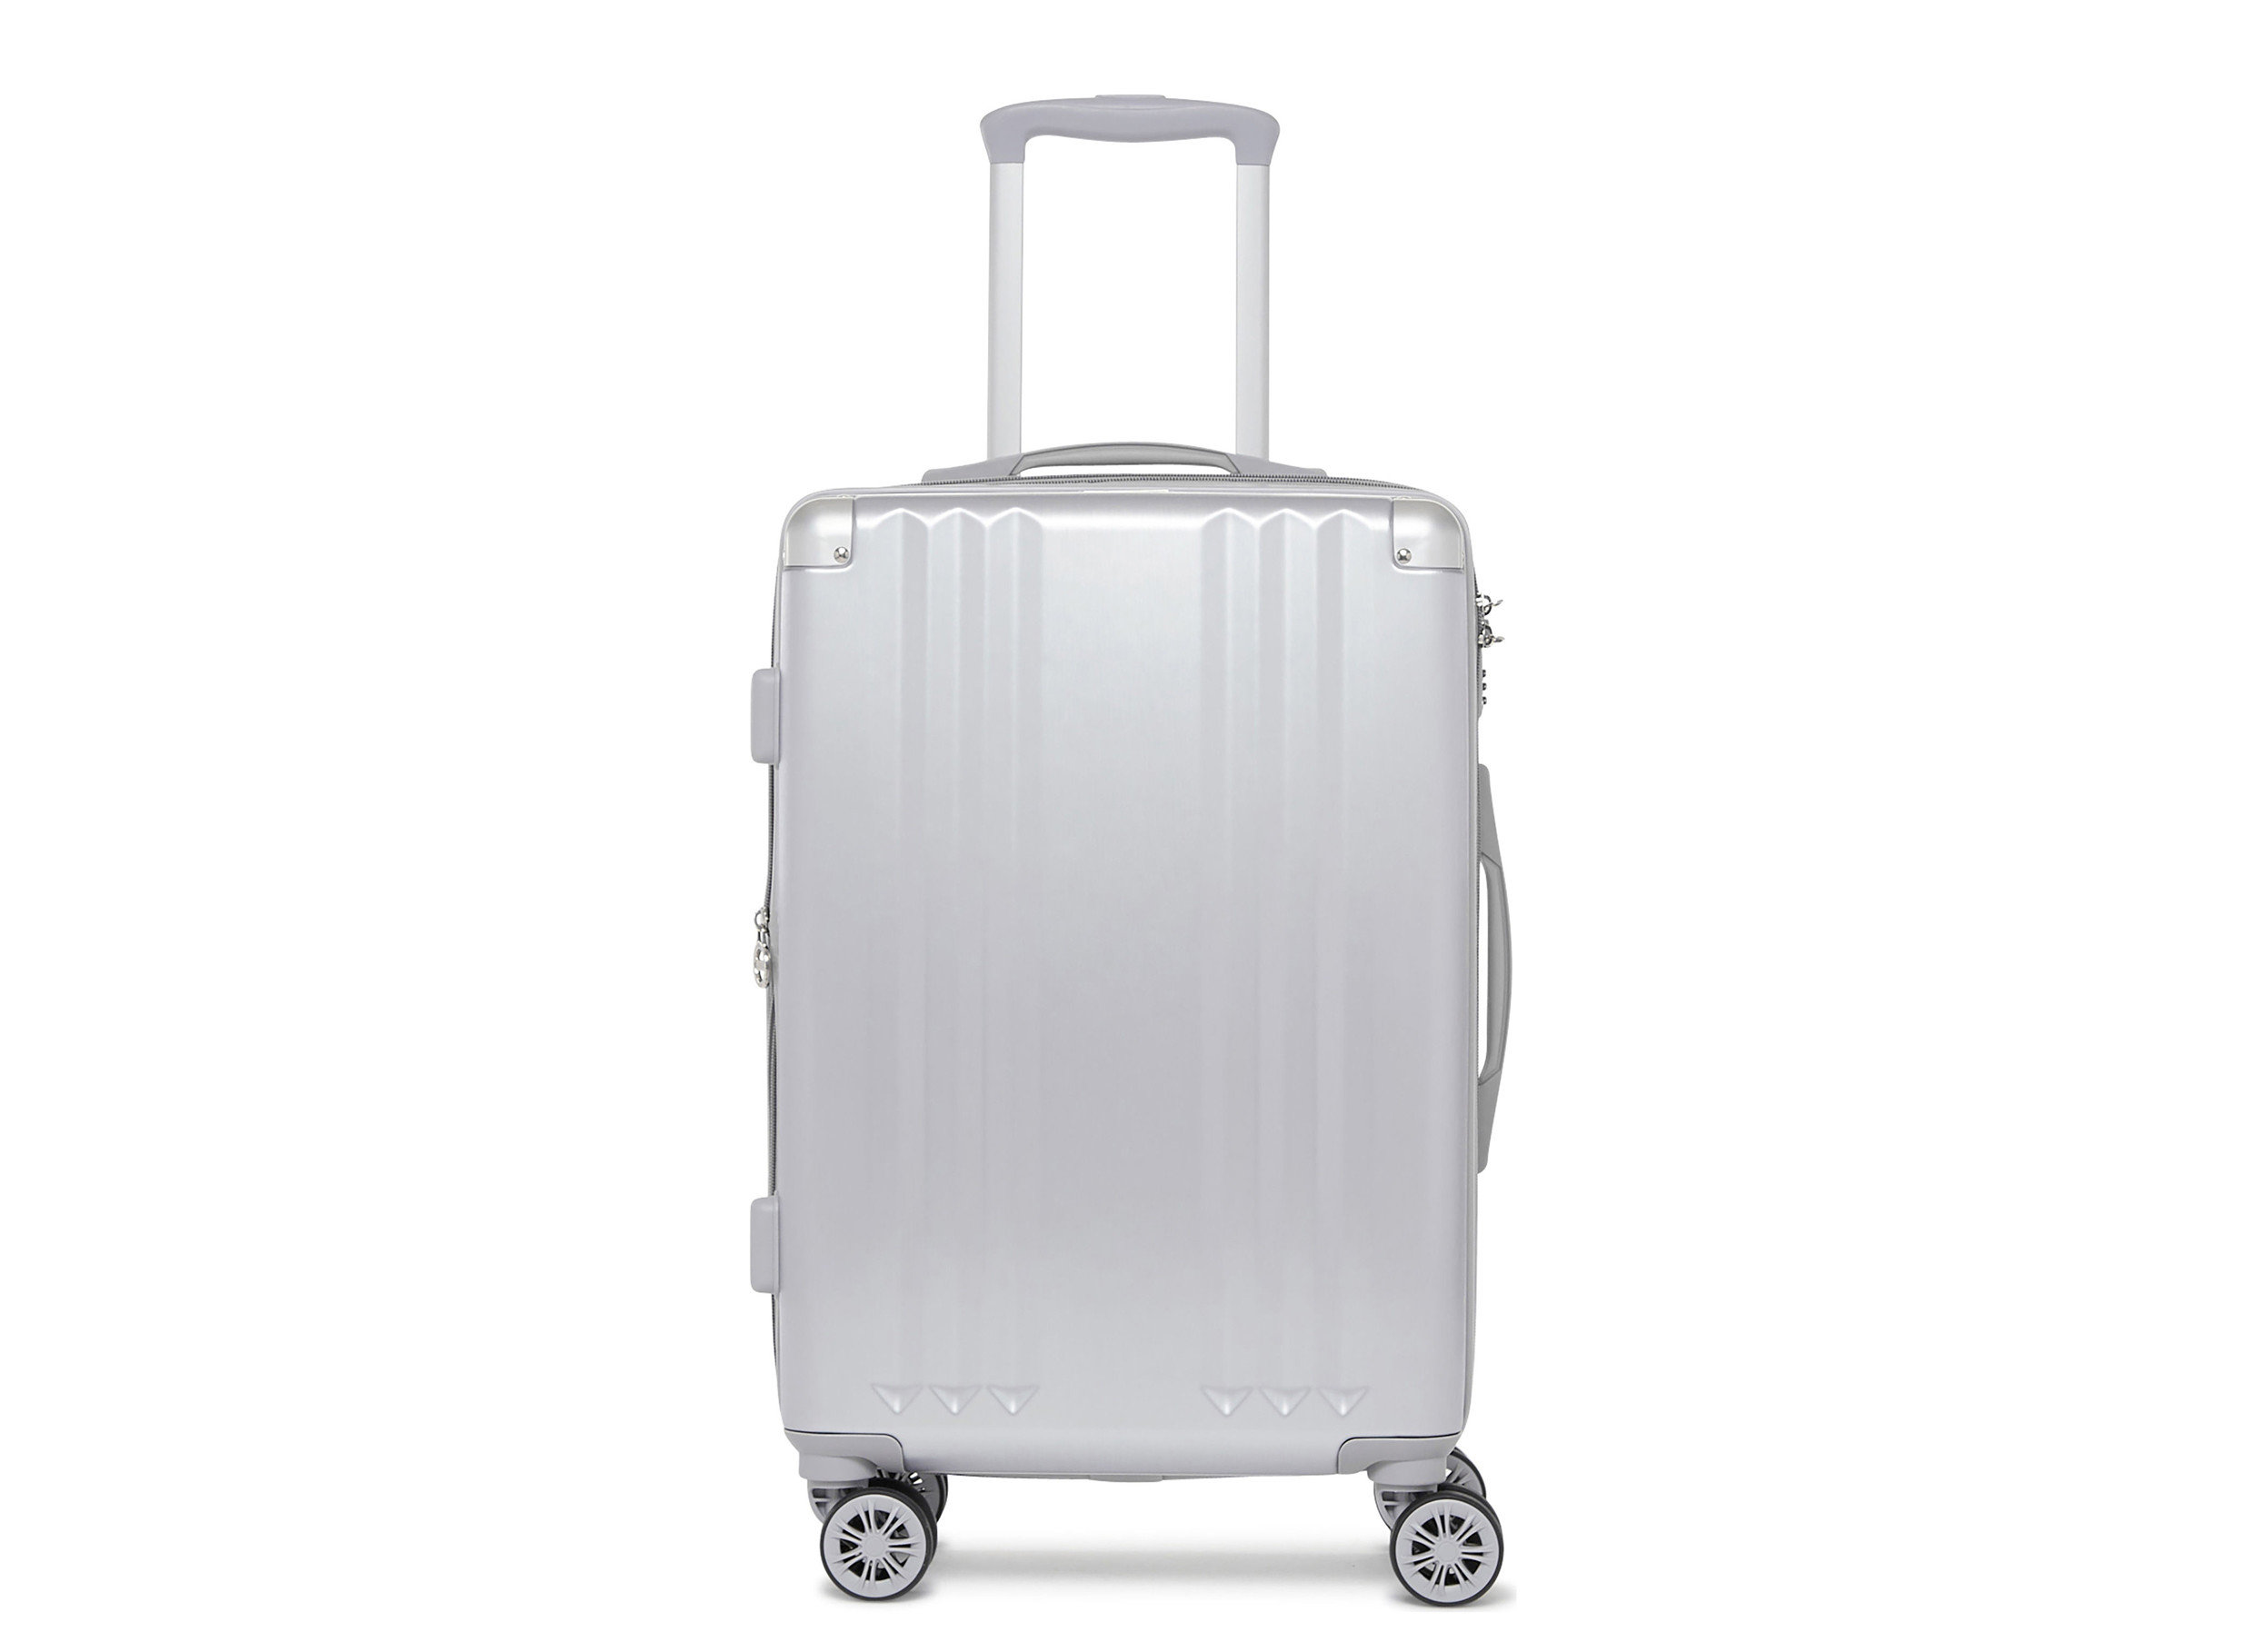 Style + Design white suitcase product product design hand luggage luggage & bags appliance metal silver kitchen appliance